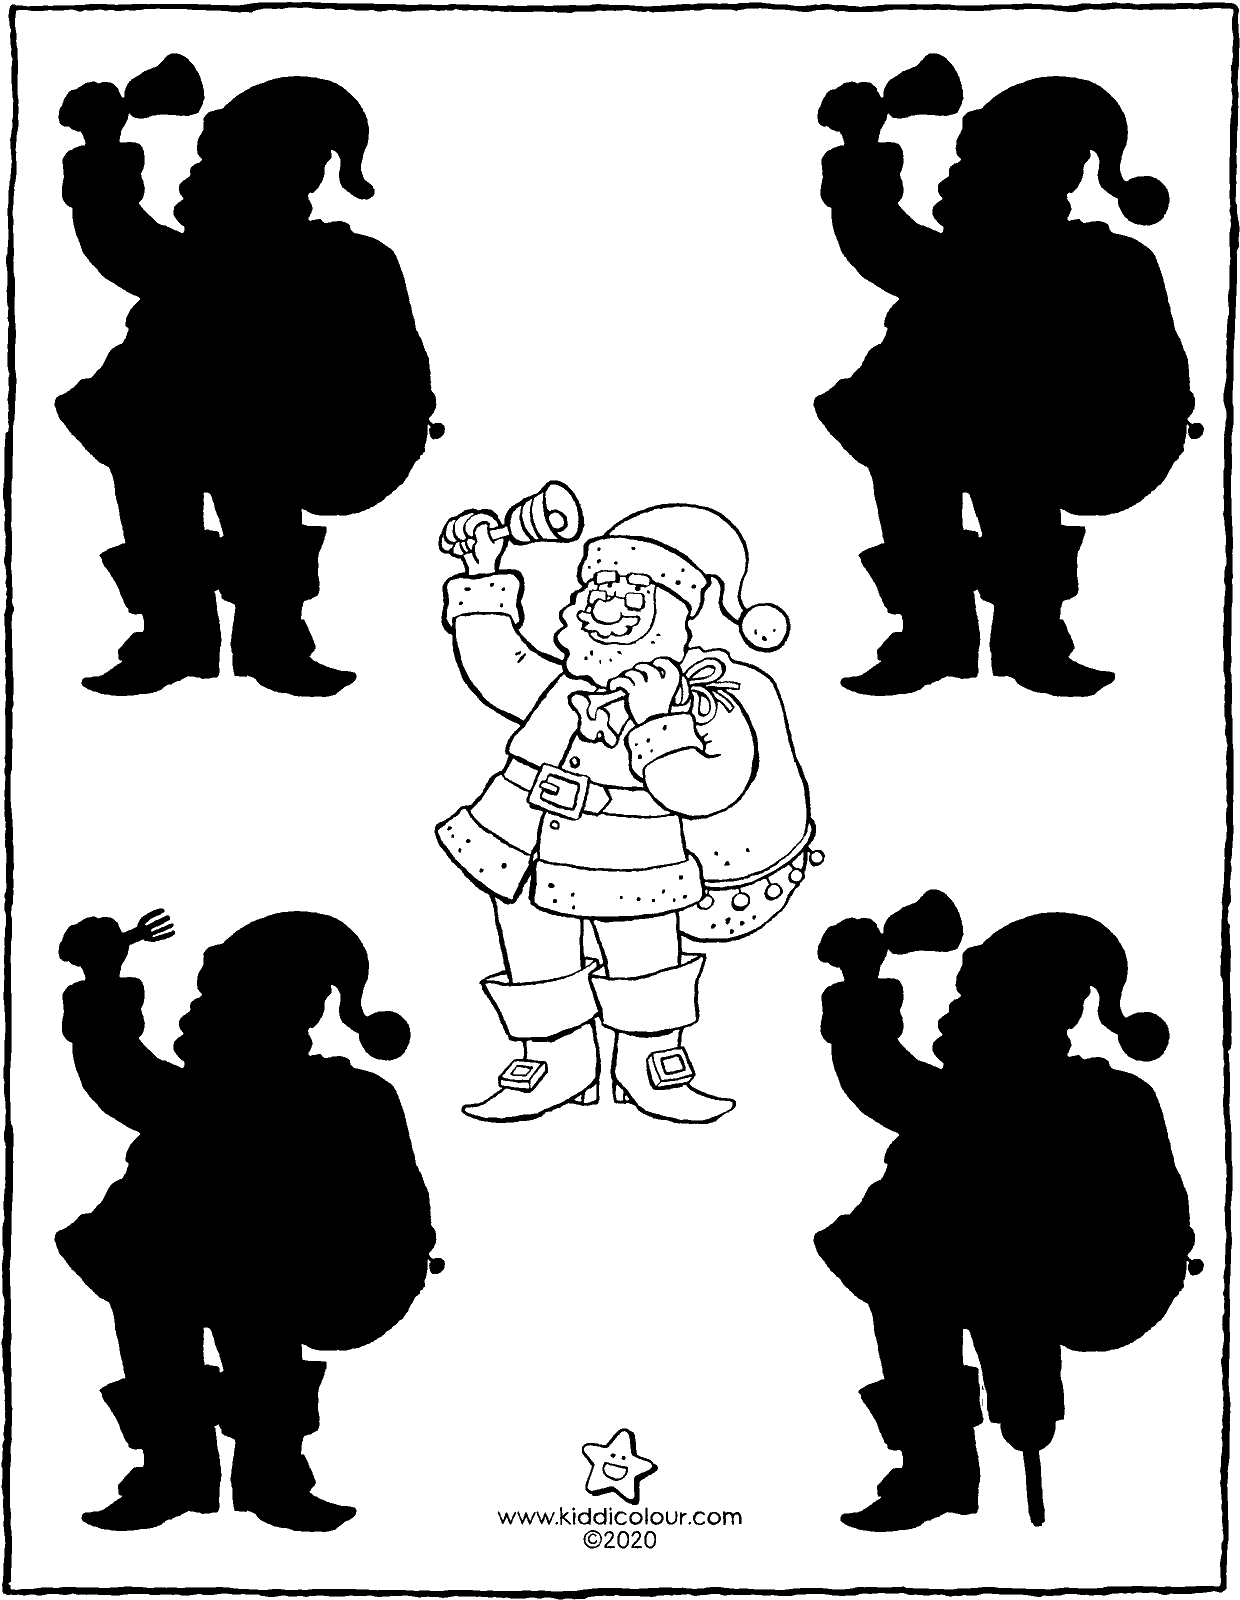 Father Christmas and his shadow colouring page drawing picture 01V